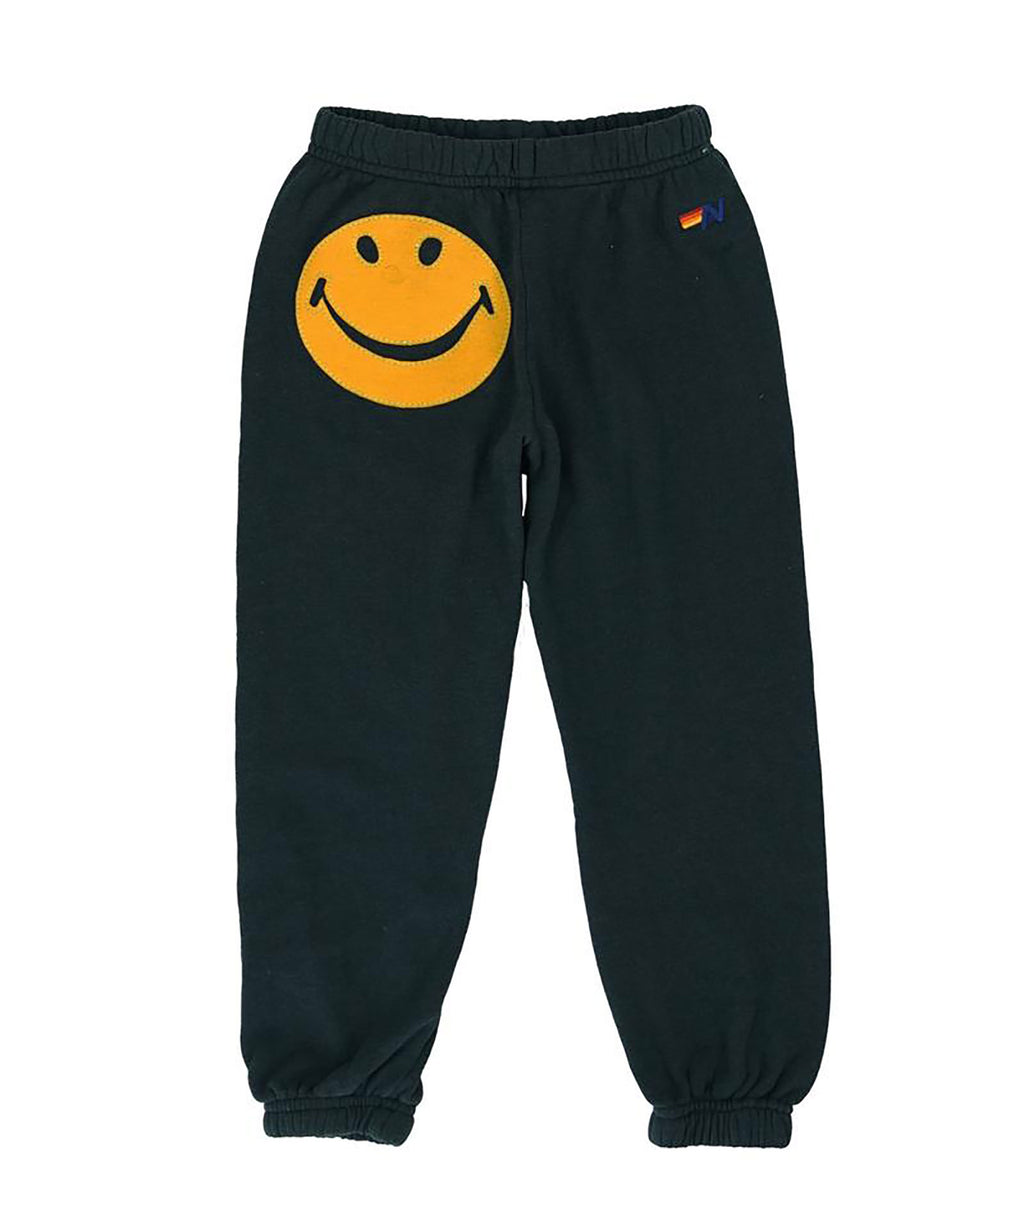 Aviator Nation Girls Charcoal Smile Sweatpants